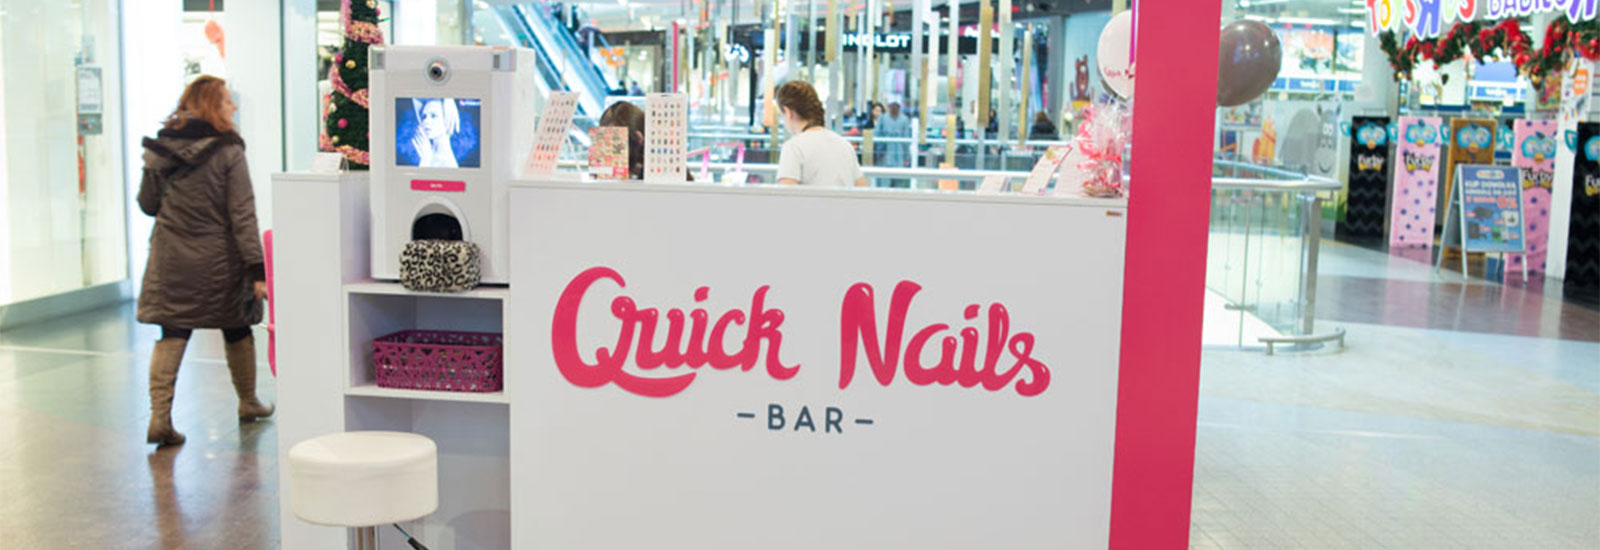 Quick Nails Bar, Rzeszów, 1